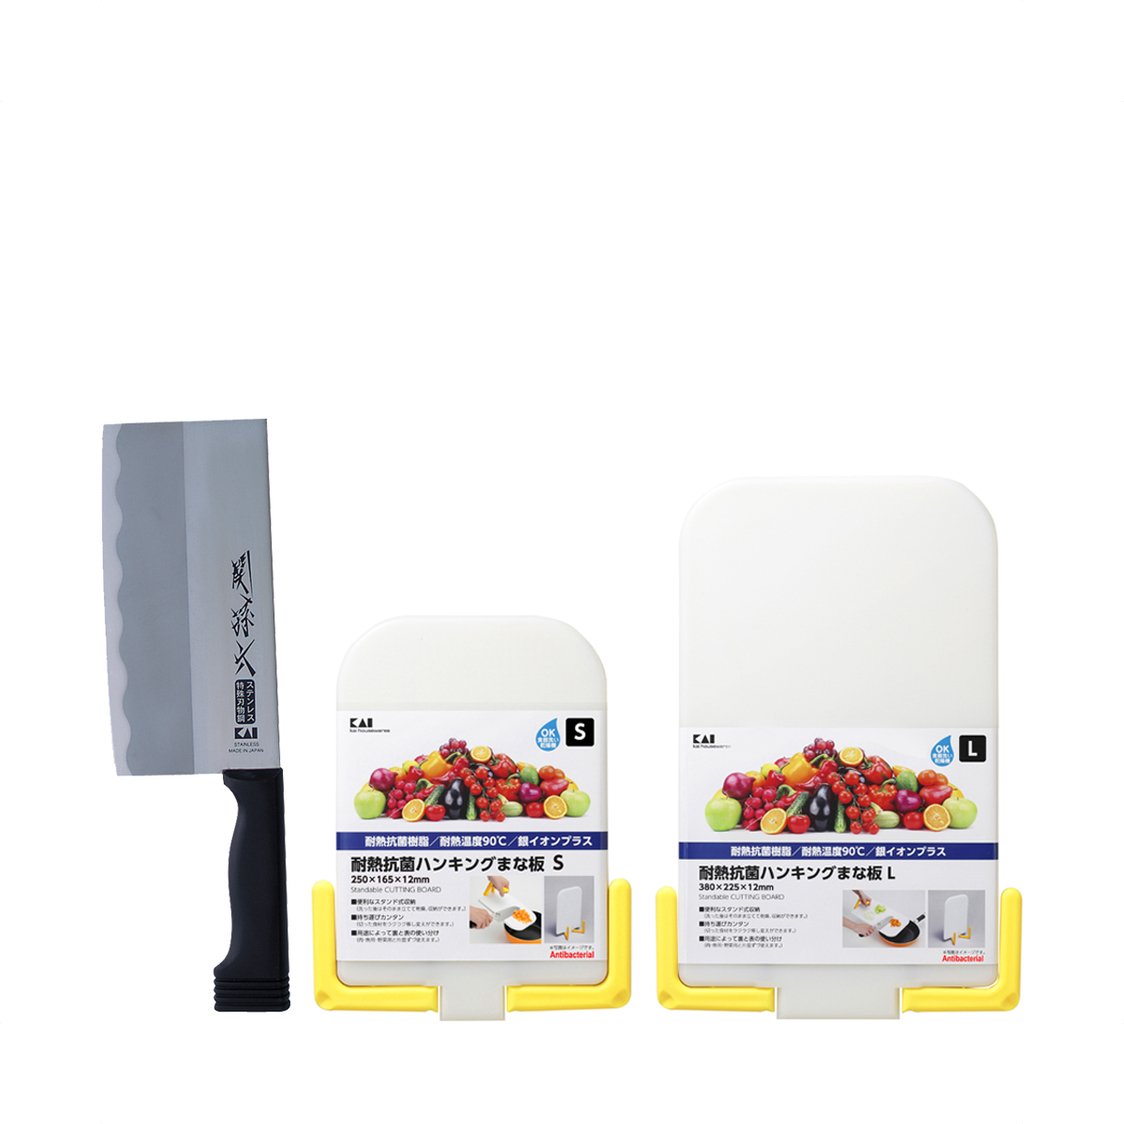 Chinese Cleaver Knife SK-9  Anti-Bacterial Cutting Board with Handles S  L Size AP-5123 AP-5121